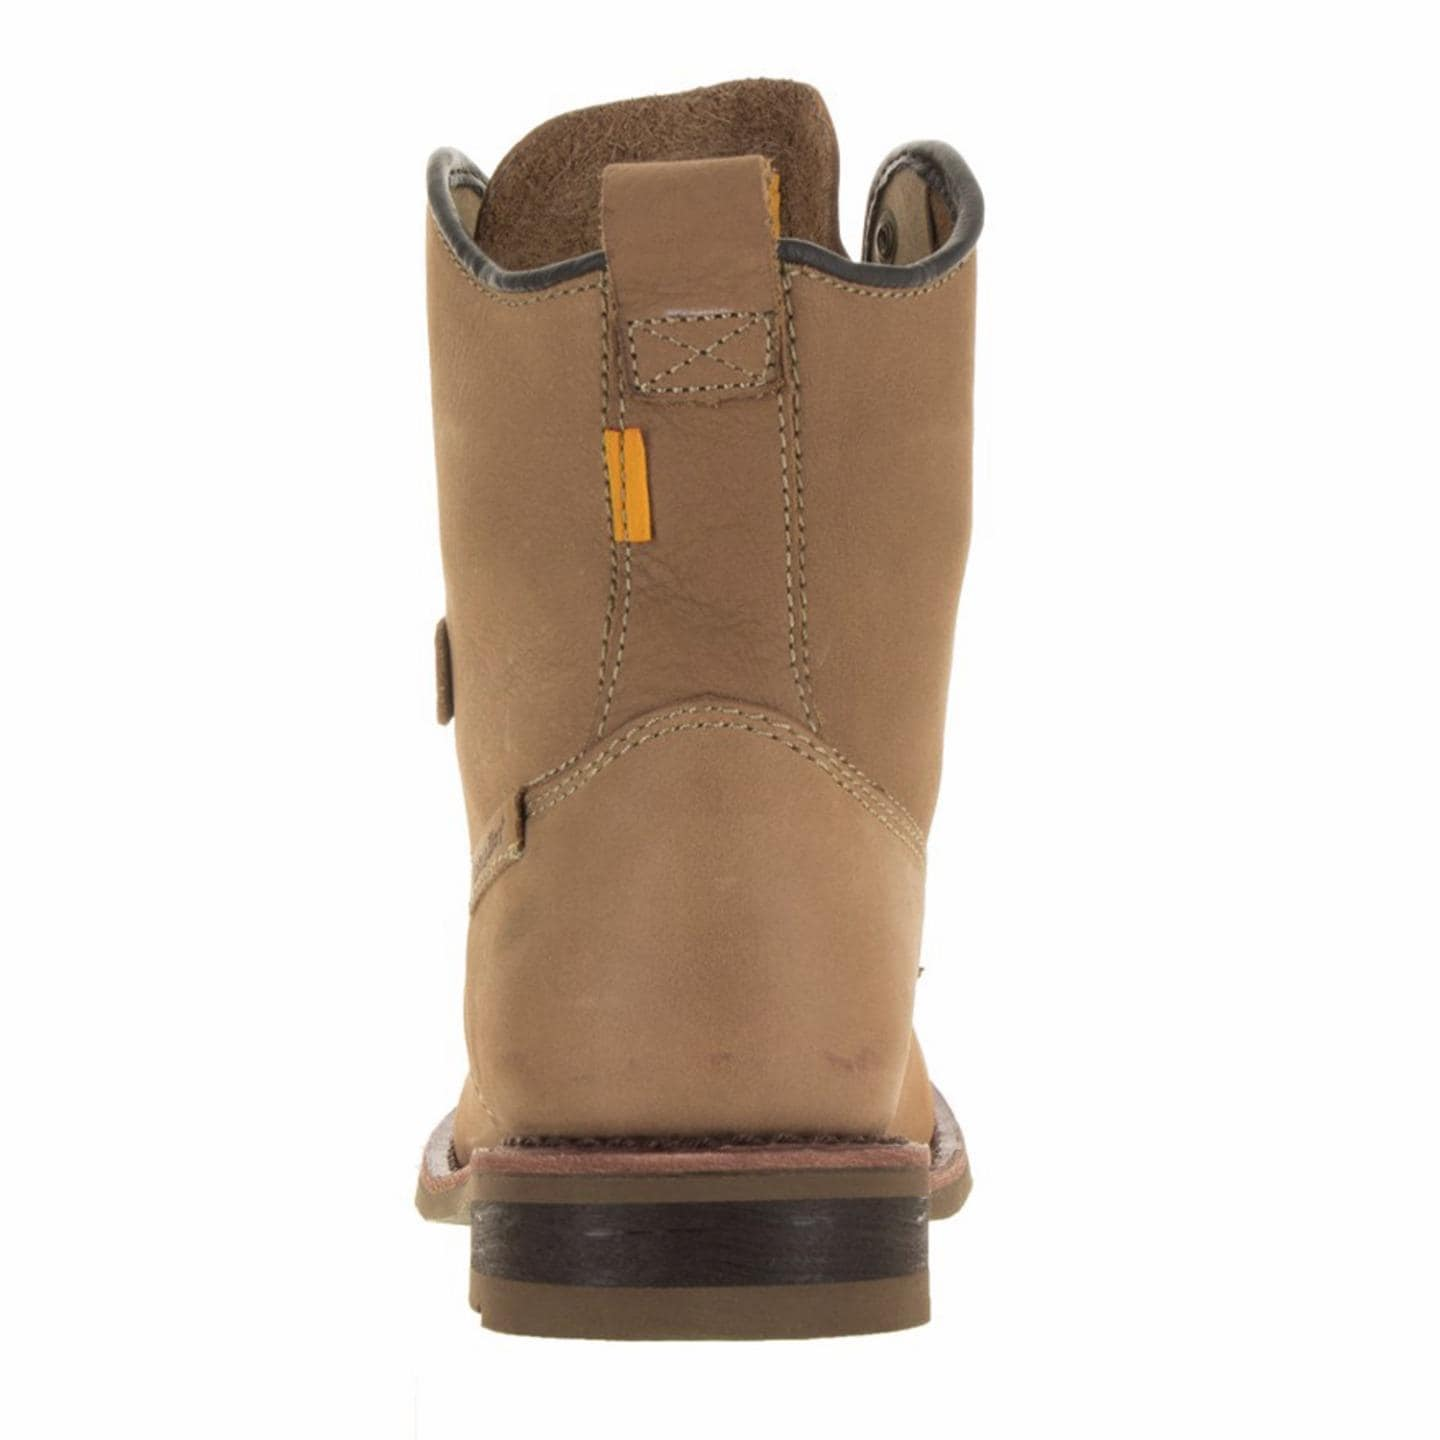 acfb16f74336b Shop Cat By Caterpillar Men s Orson Grey Leather Boots - Free Shipping  Today - Overstock - 13025797